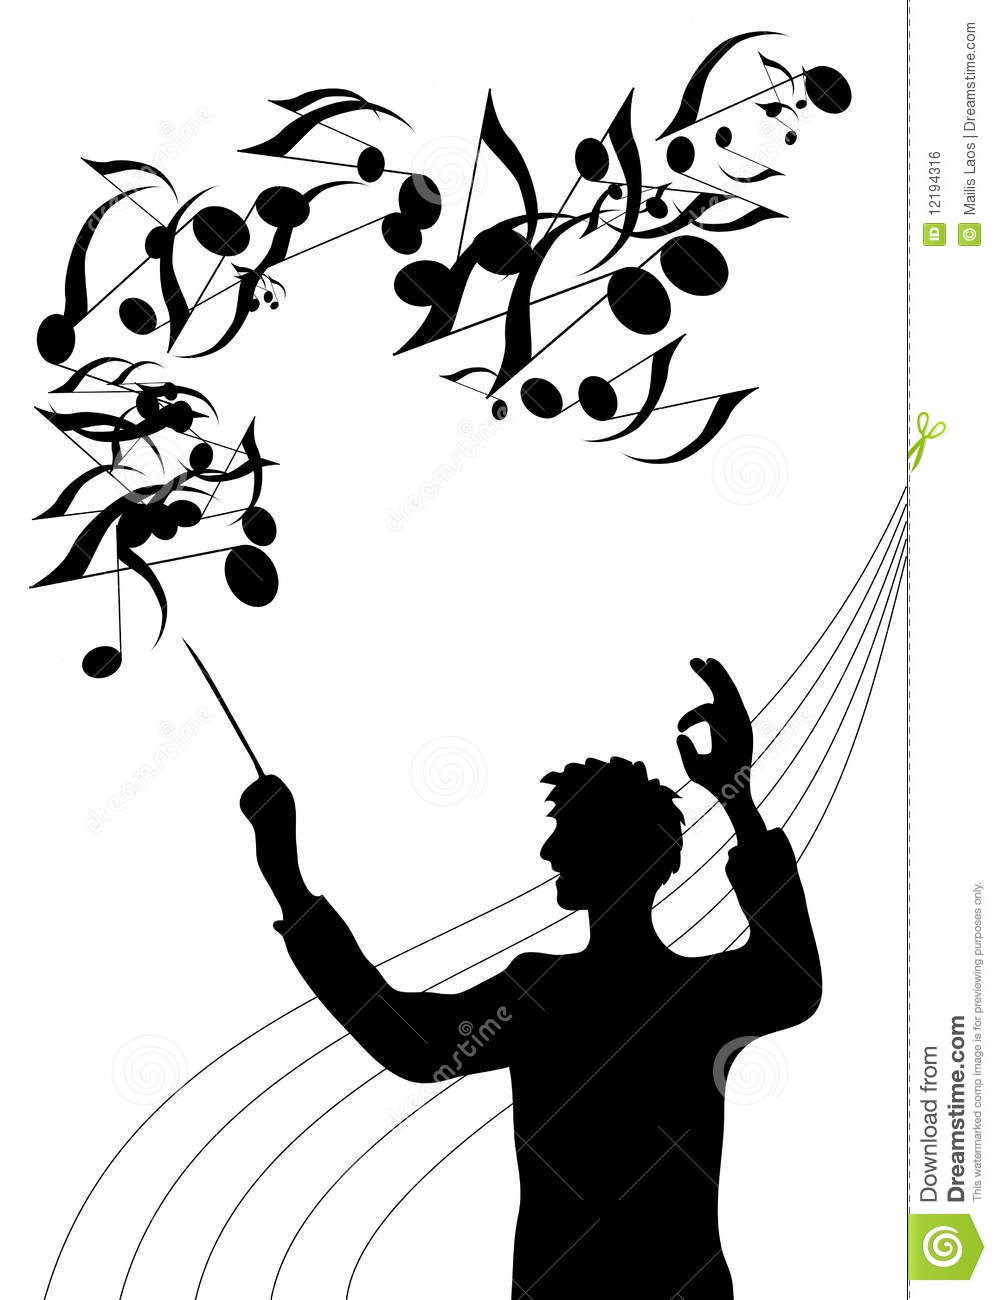 Maestro stock vector. Image of manager, people, stick